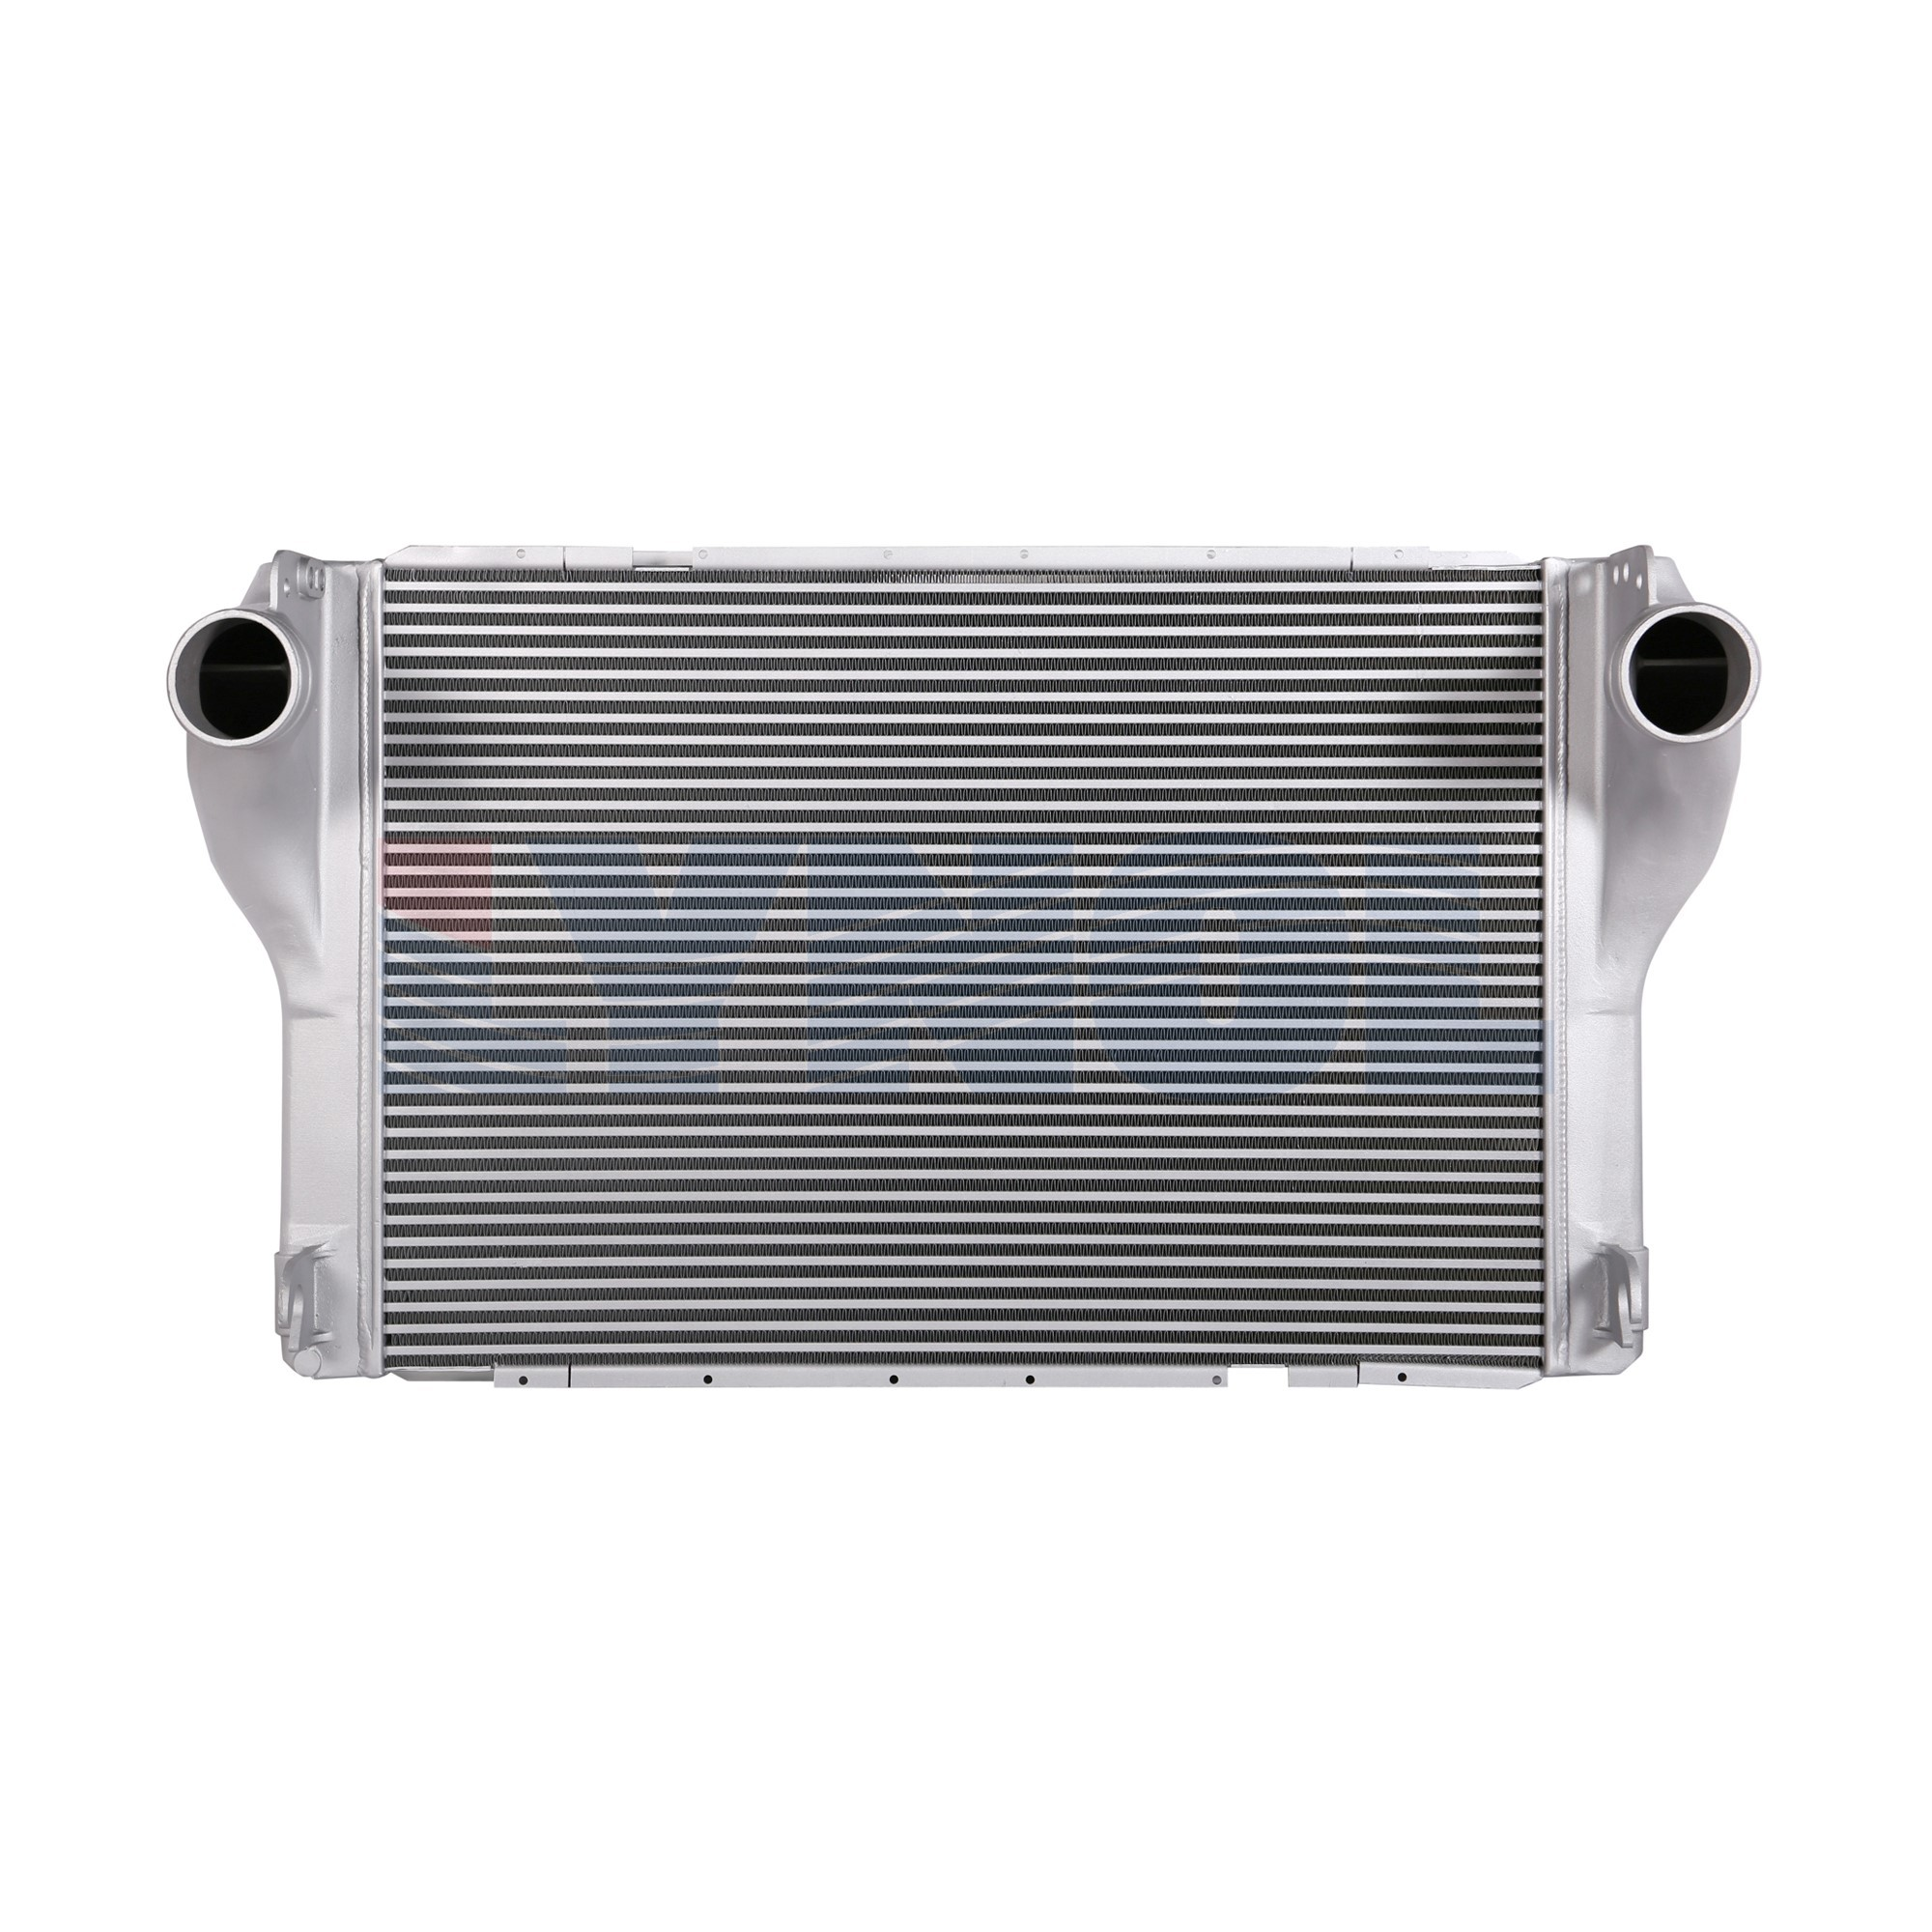 2401-004 - Peterbilt / Kenworth Charge Air Cooler